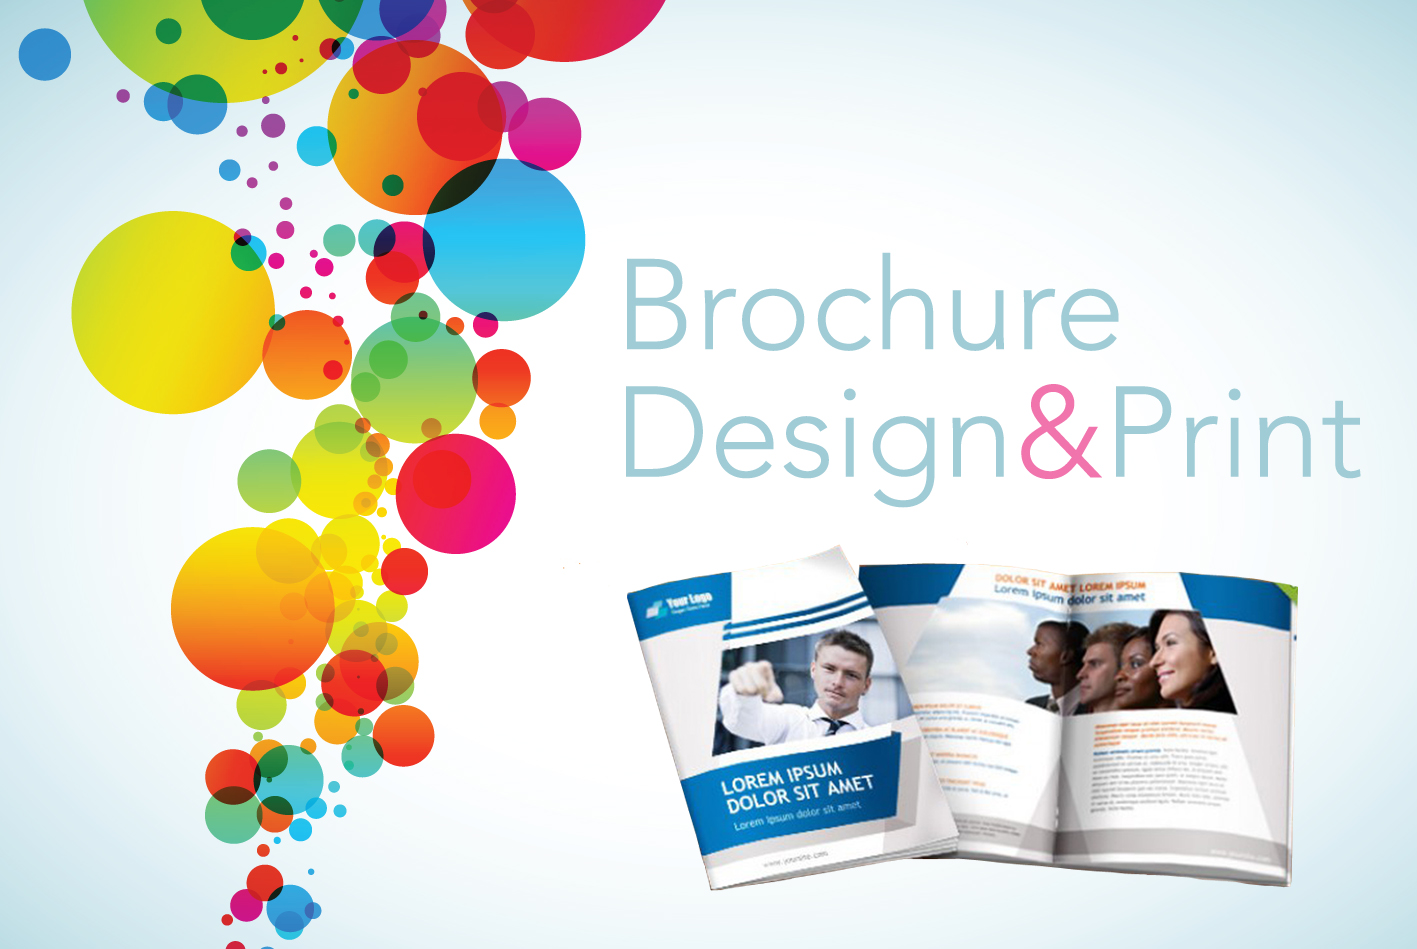 Brochure design designhill blog for Brochure design services